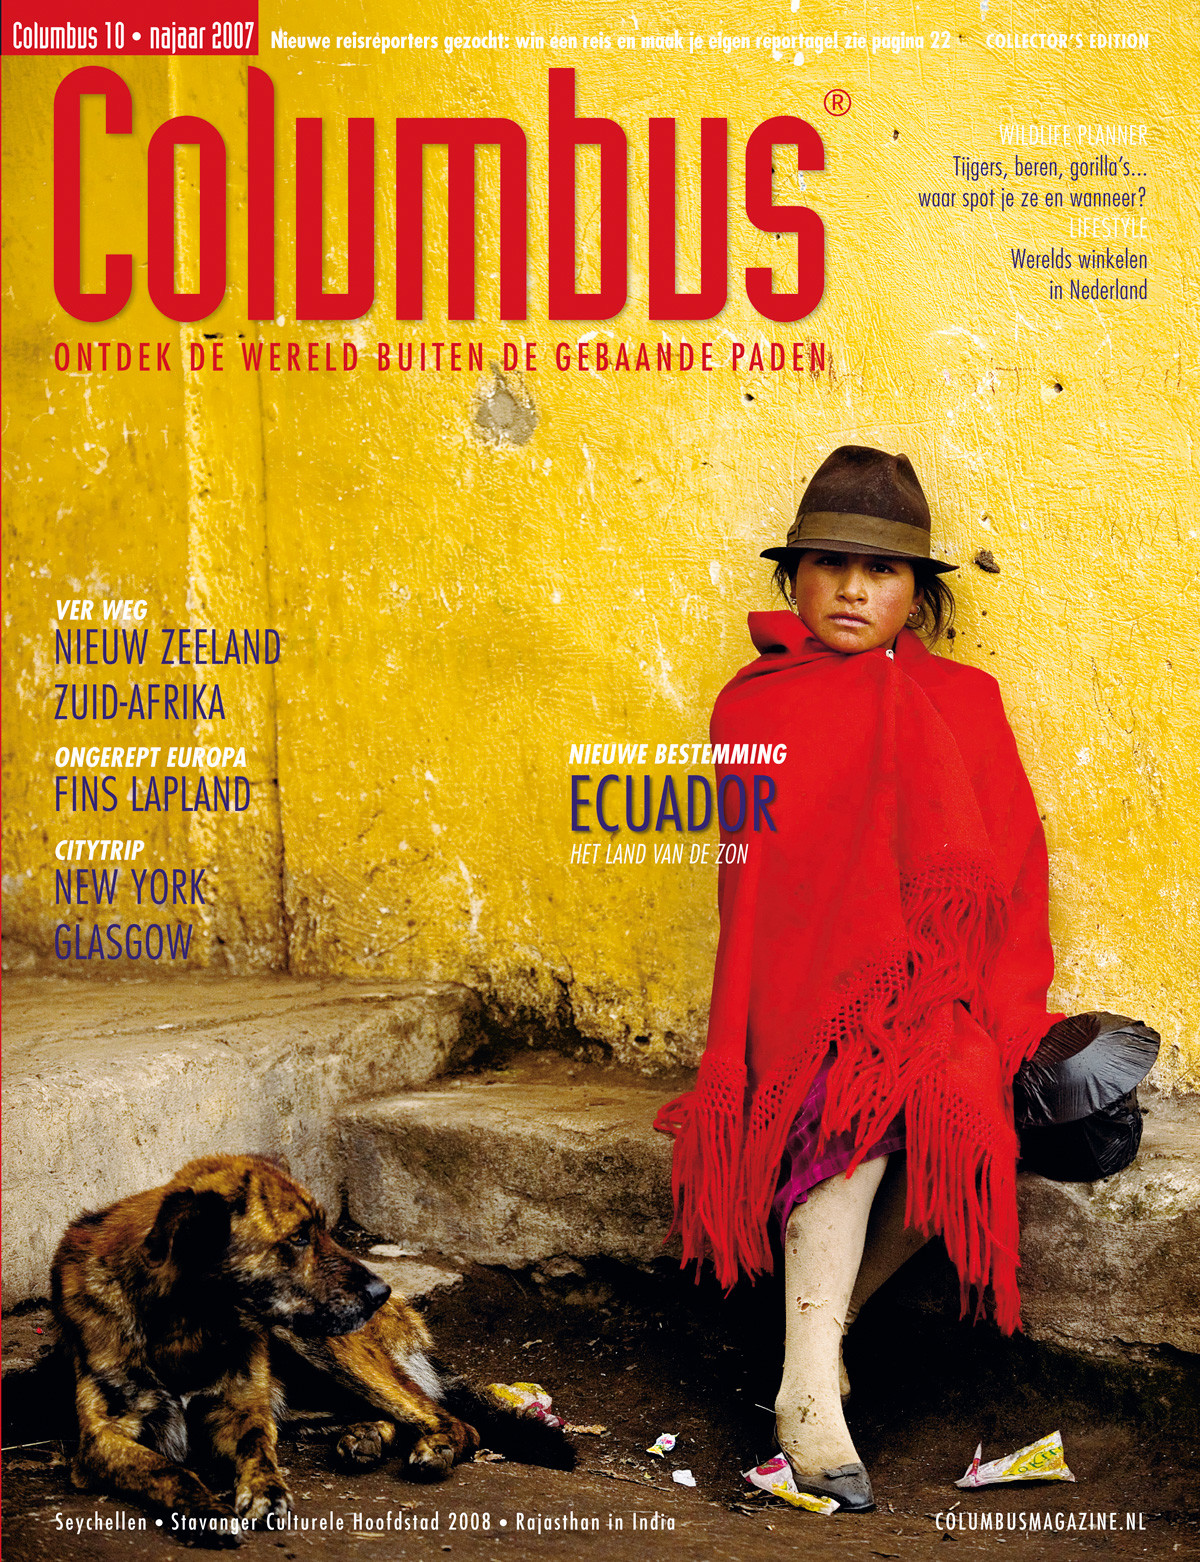 Columbus Travel magazine cover 10